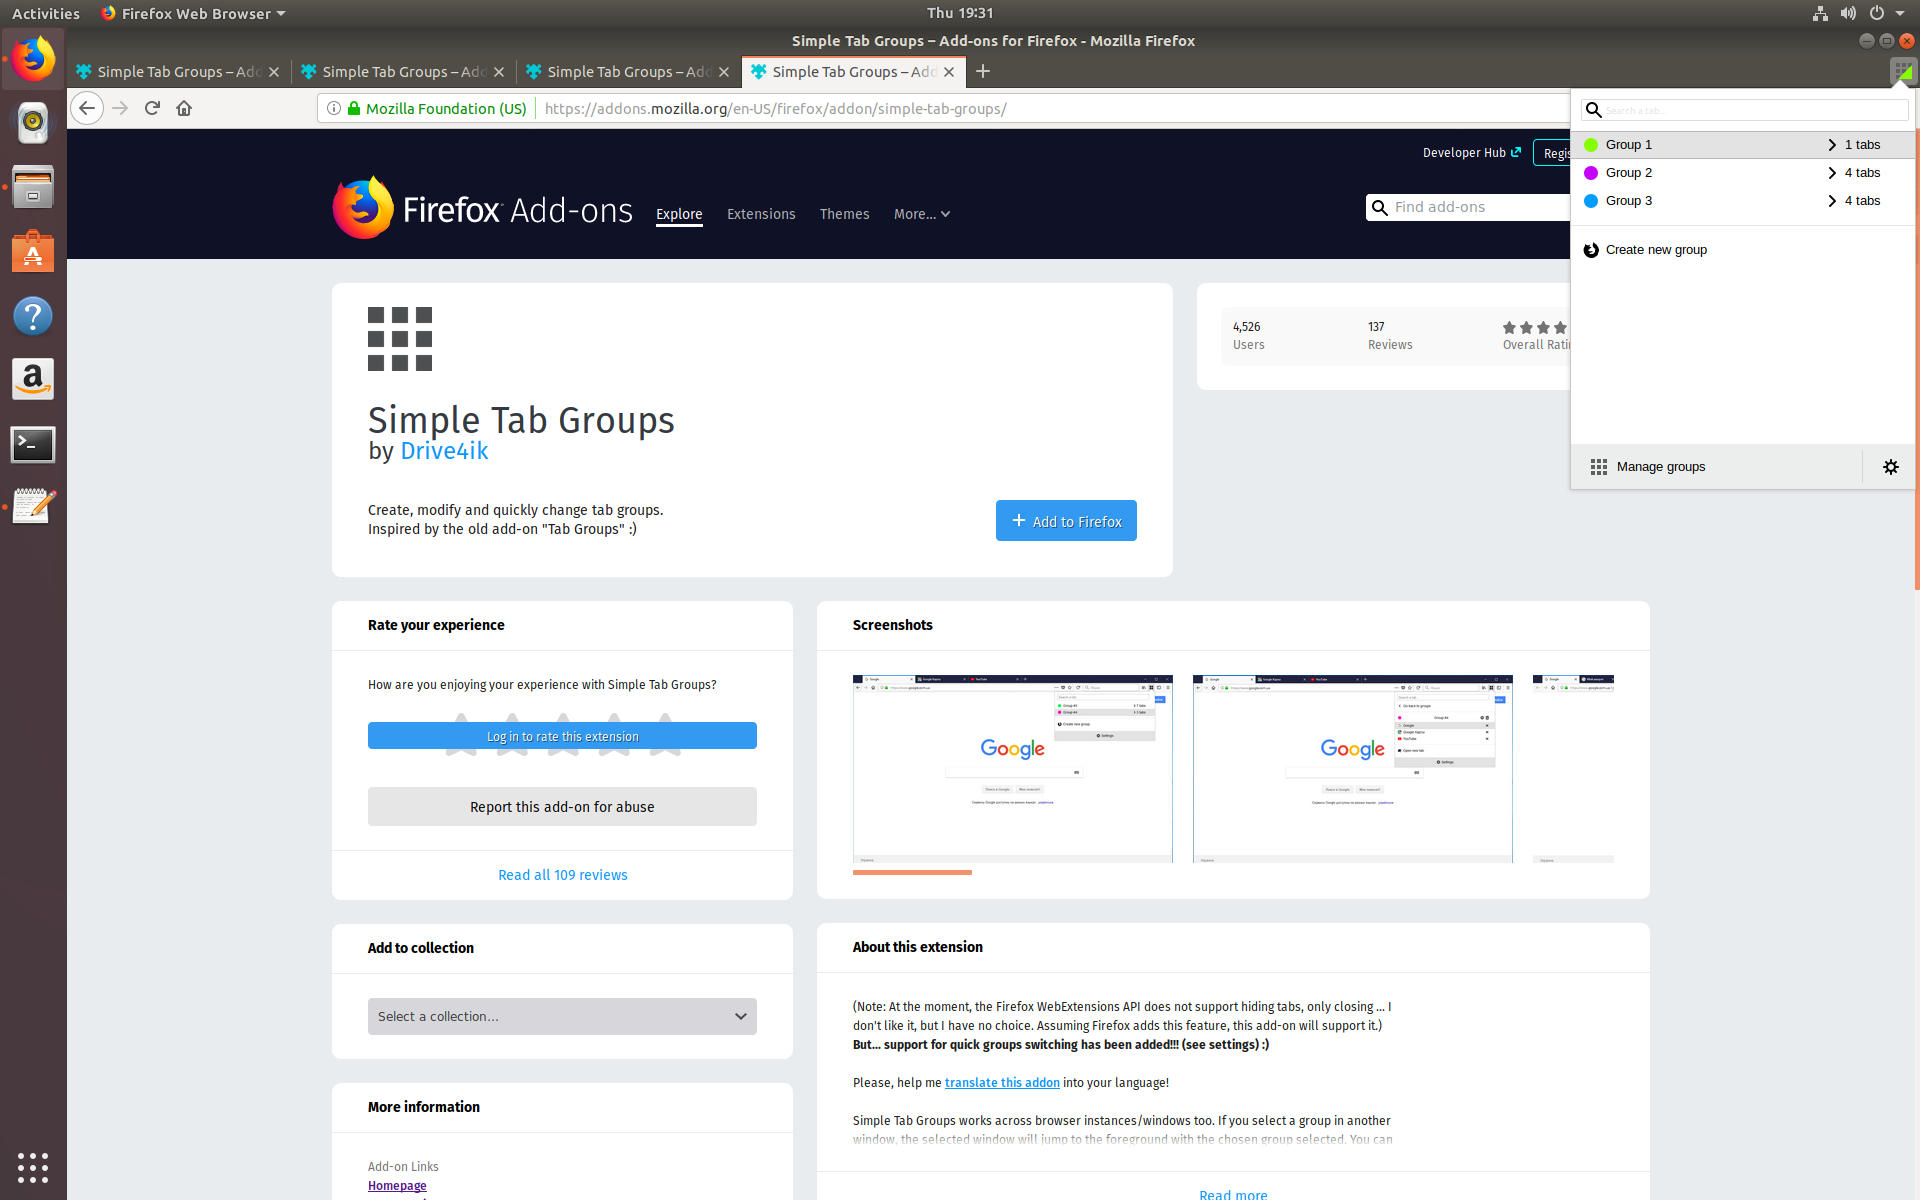 Tabs missing from Group after closing / restarting Firefox